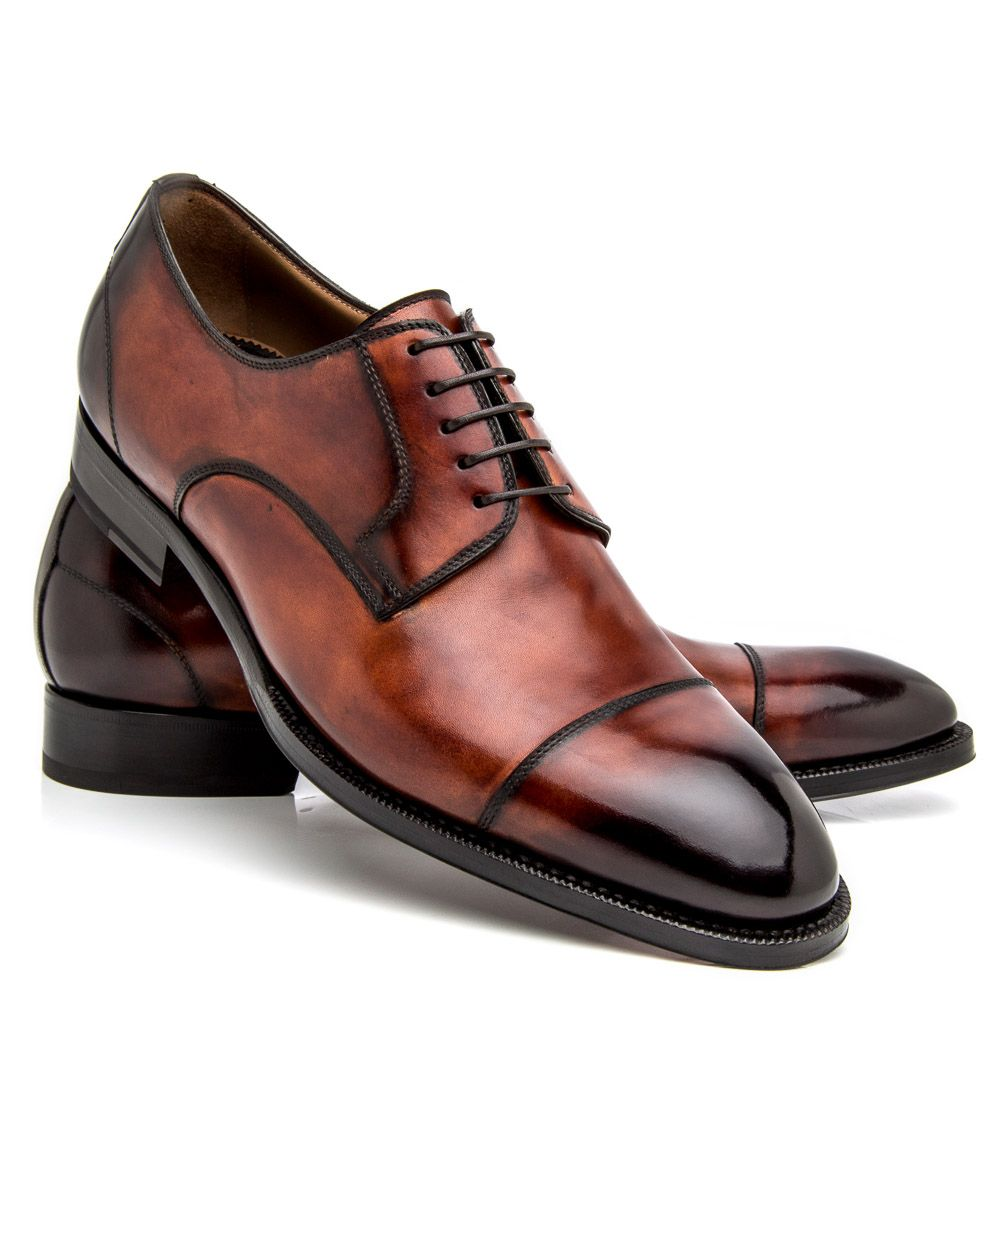 6a9df459d Di Bianco Deco Marmo Cap Toe Derby Smooth leather upper Rounded toe  Burnished…